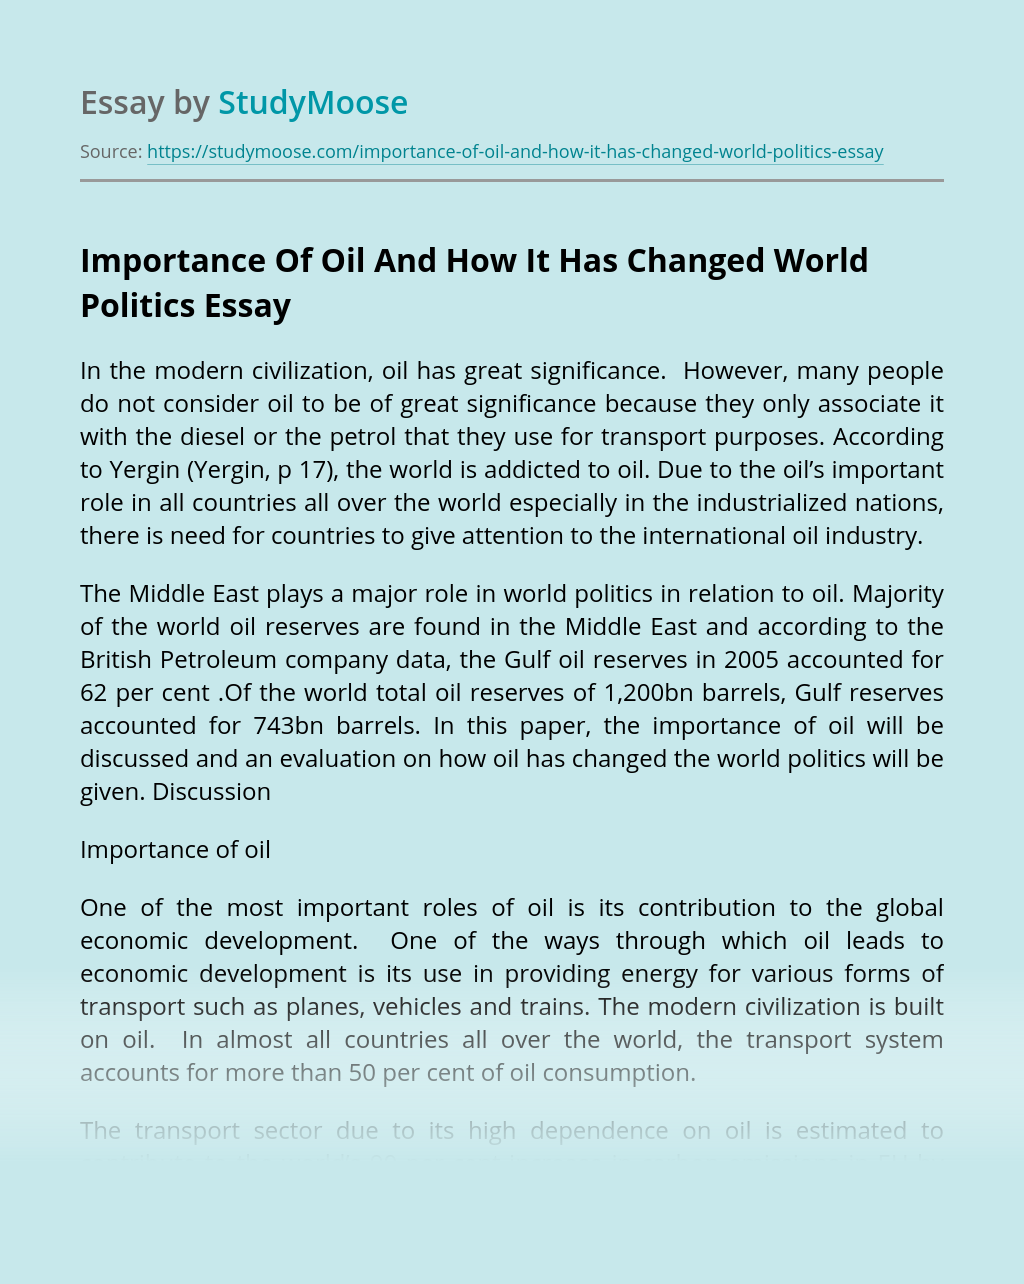 Importance Of Oil And How It Has Changed World Politics